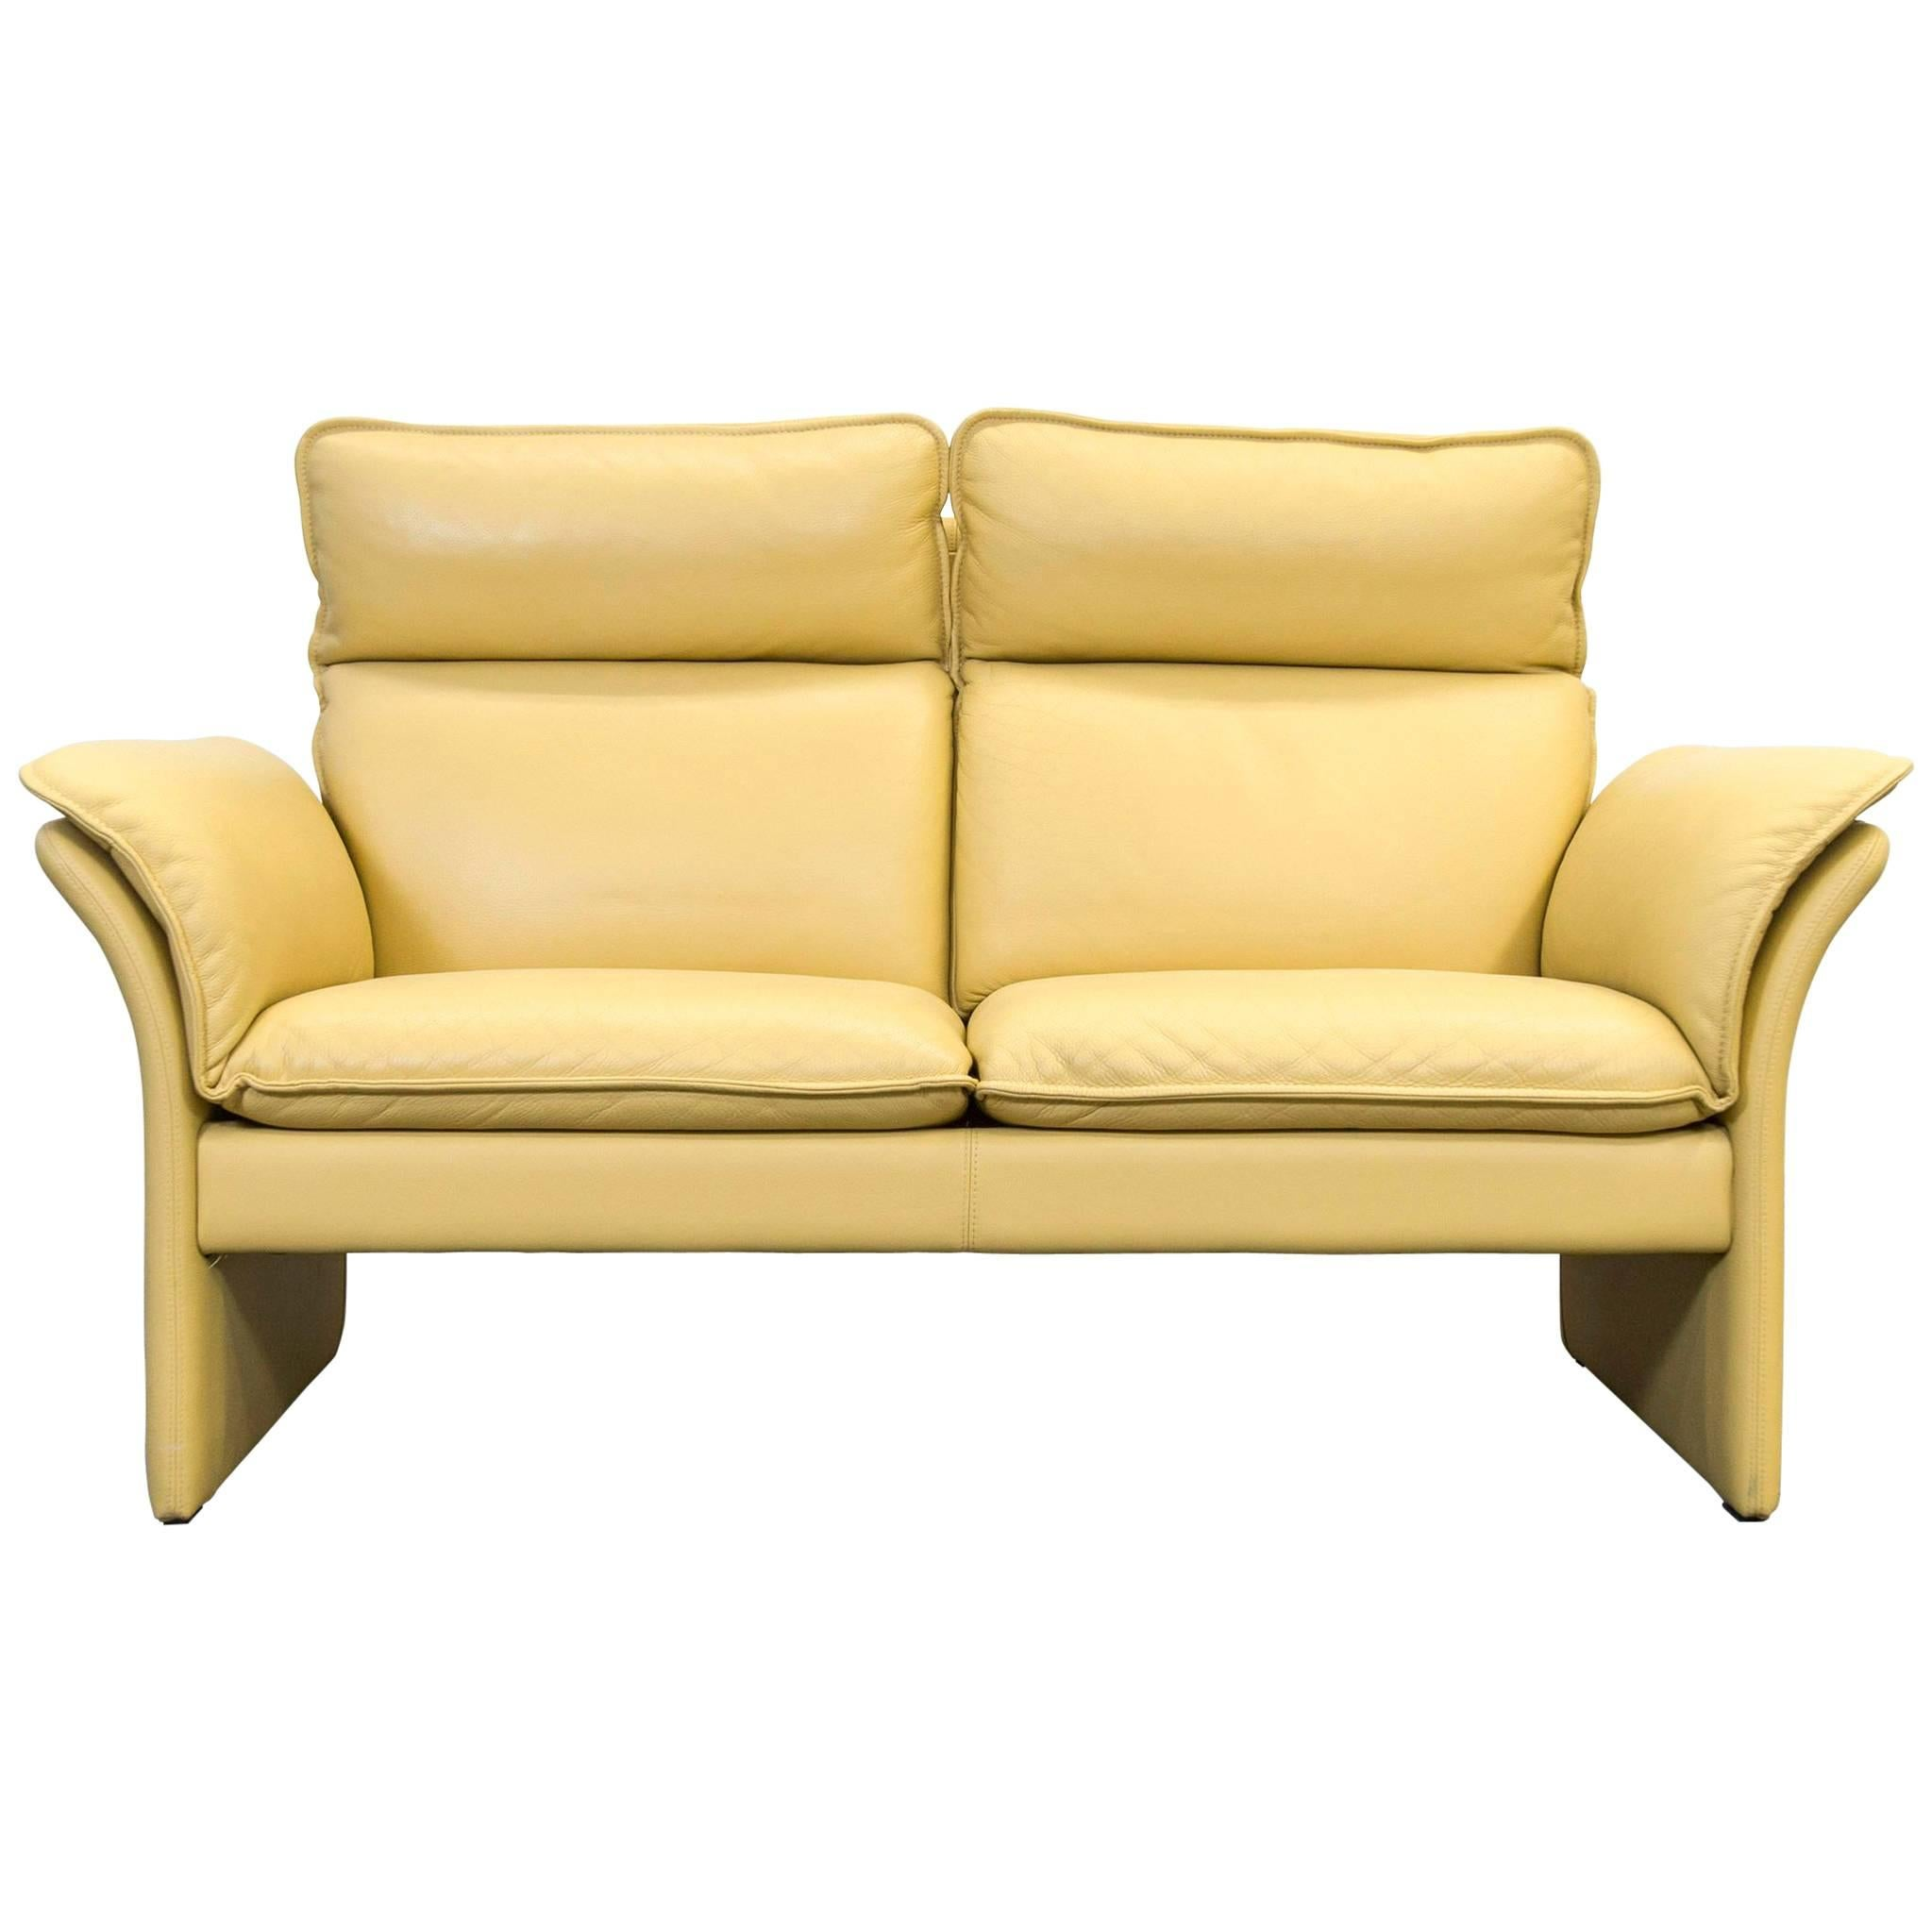 Dreipunkt Designer Leather Sofa Mustard Yellow Two Seat Couch Modern For  Sale